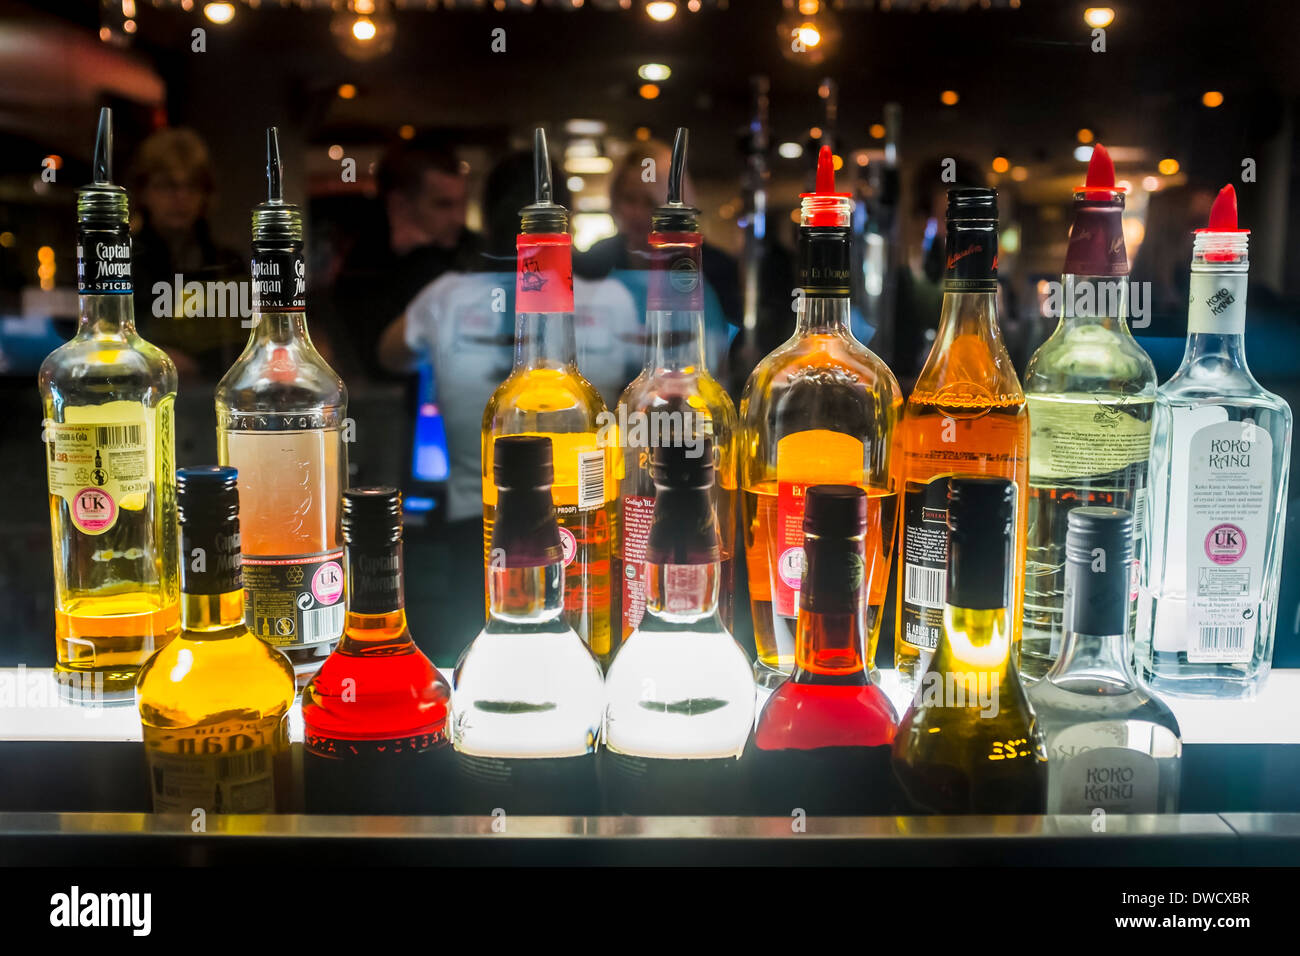 Bottles of alcoholic spirits in cocktail bar, London, UK - Stock Image